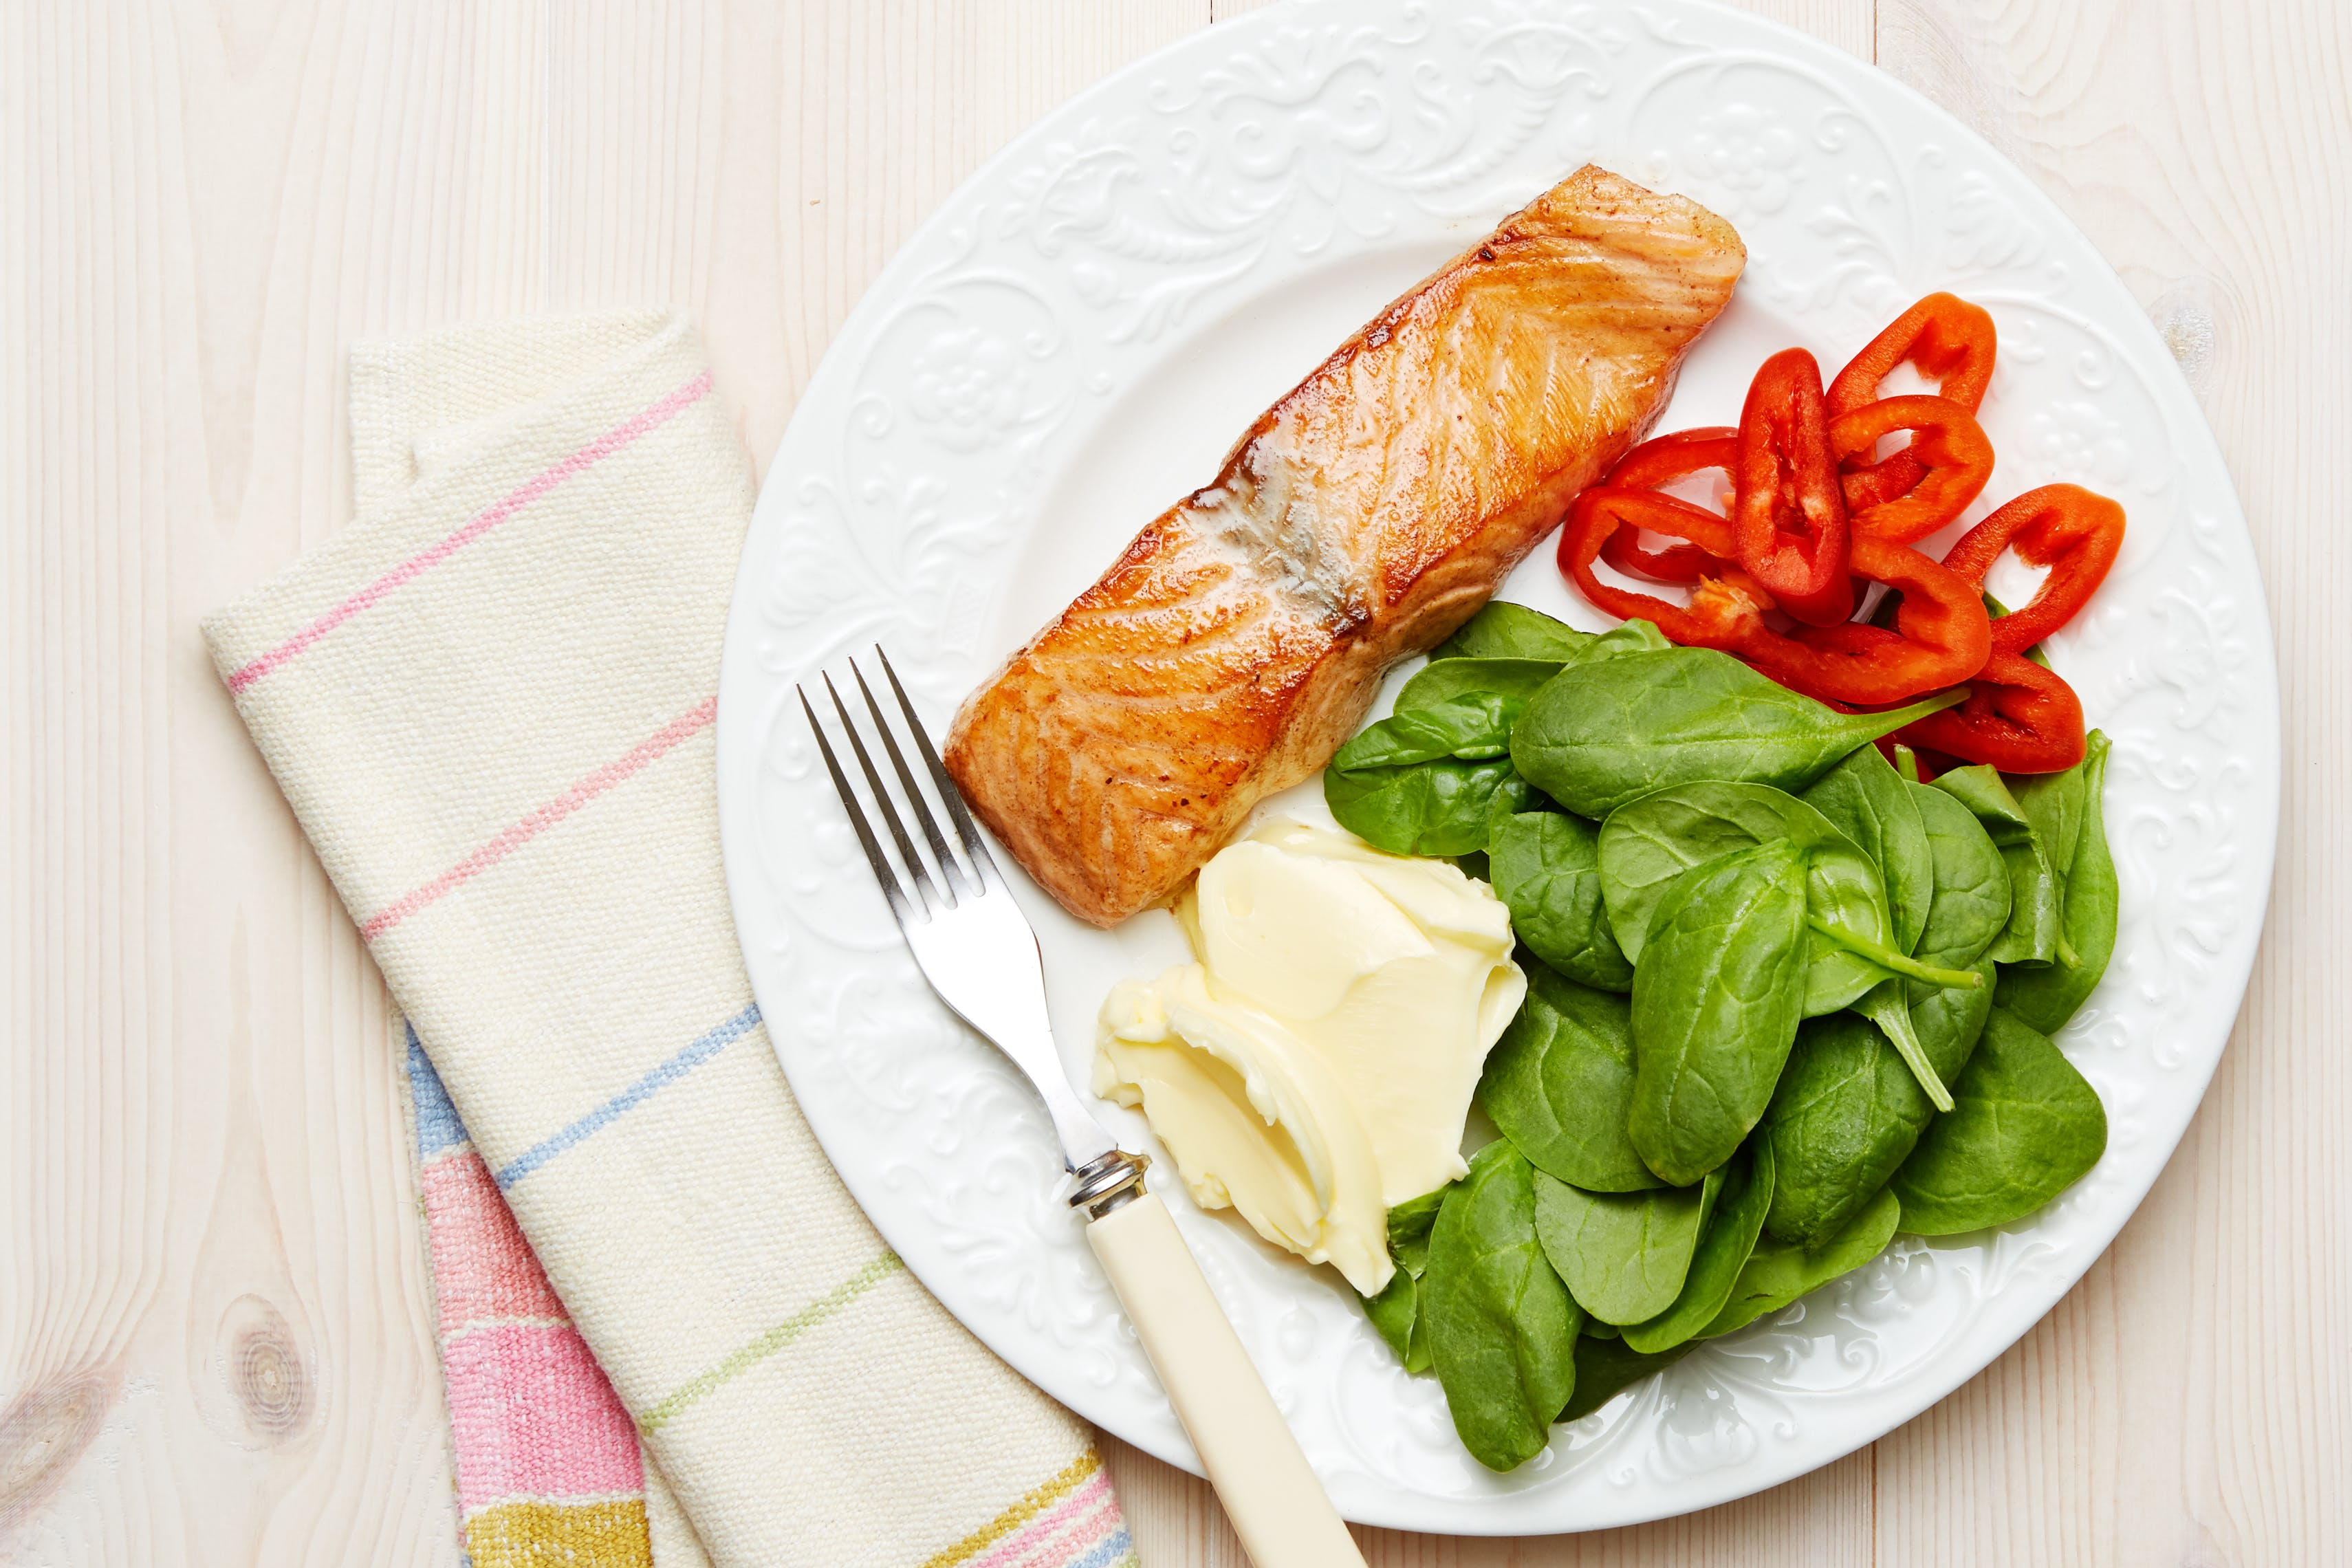 Keto salmon and spinach plate